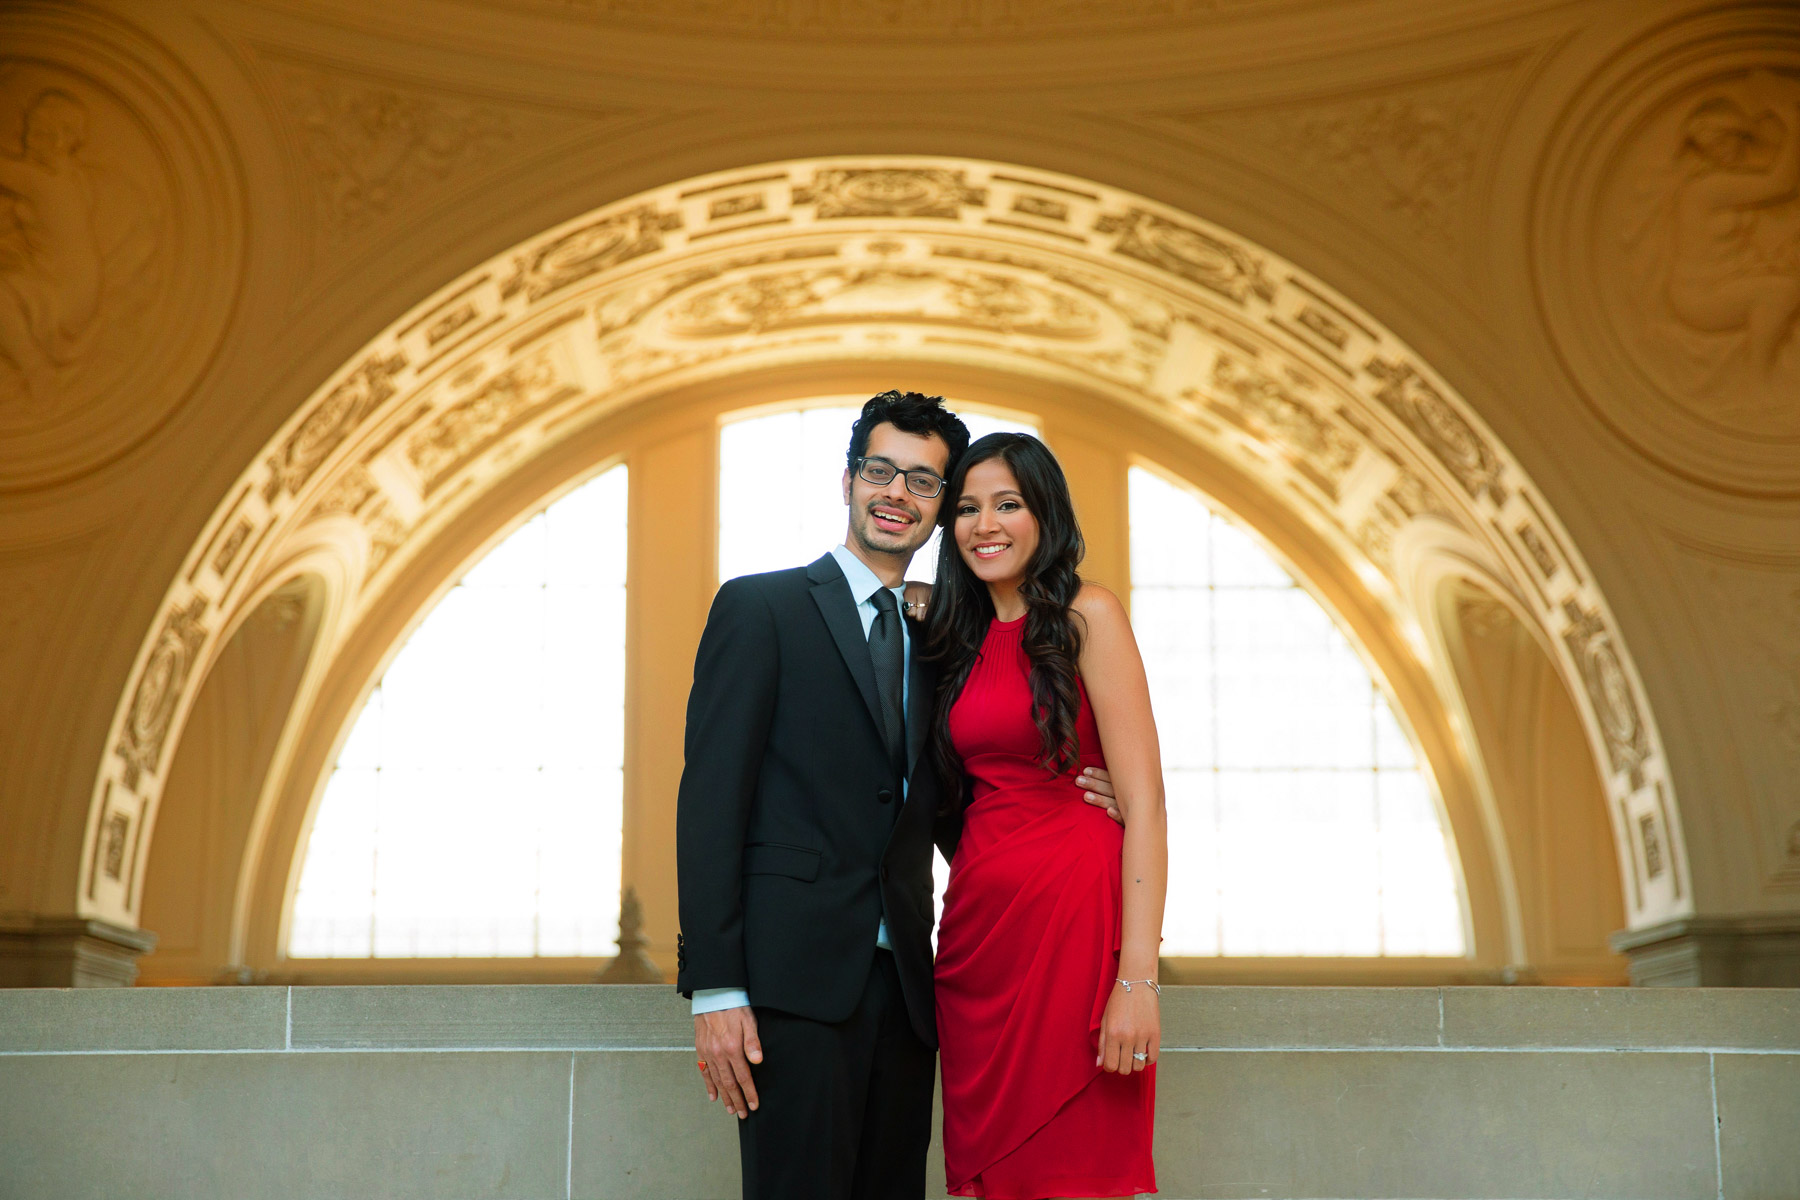 Pooja Aj Portrait Photography At San Francisco City Hall Palace Of Fine Art